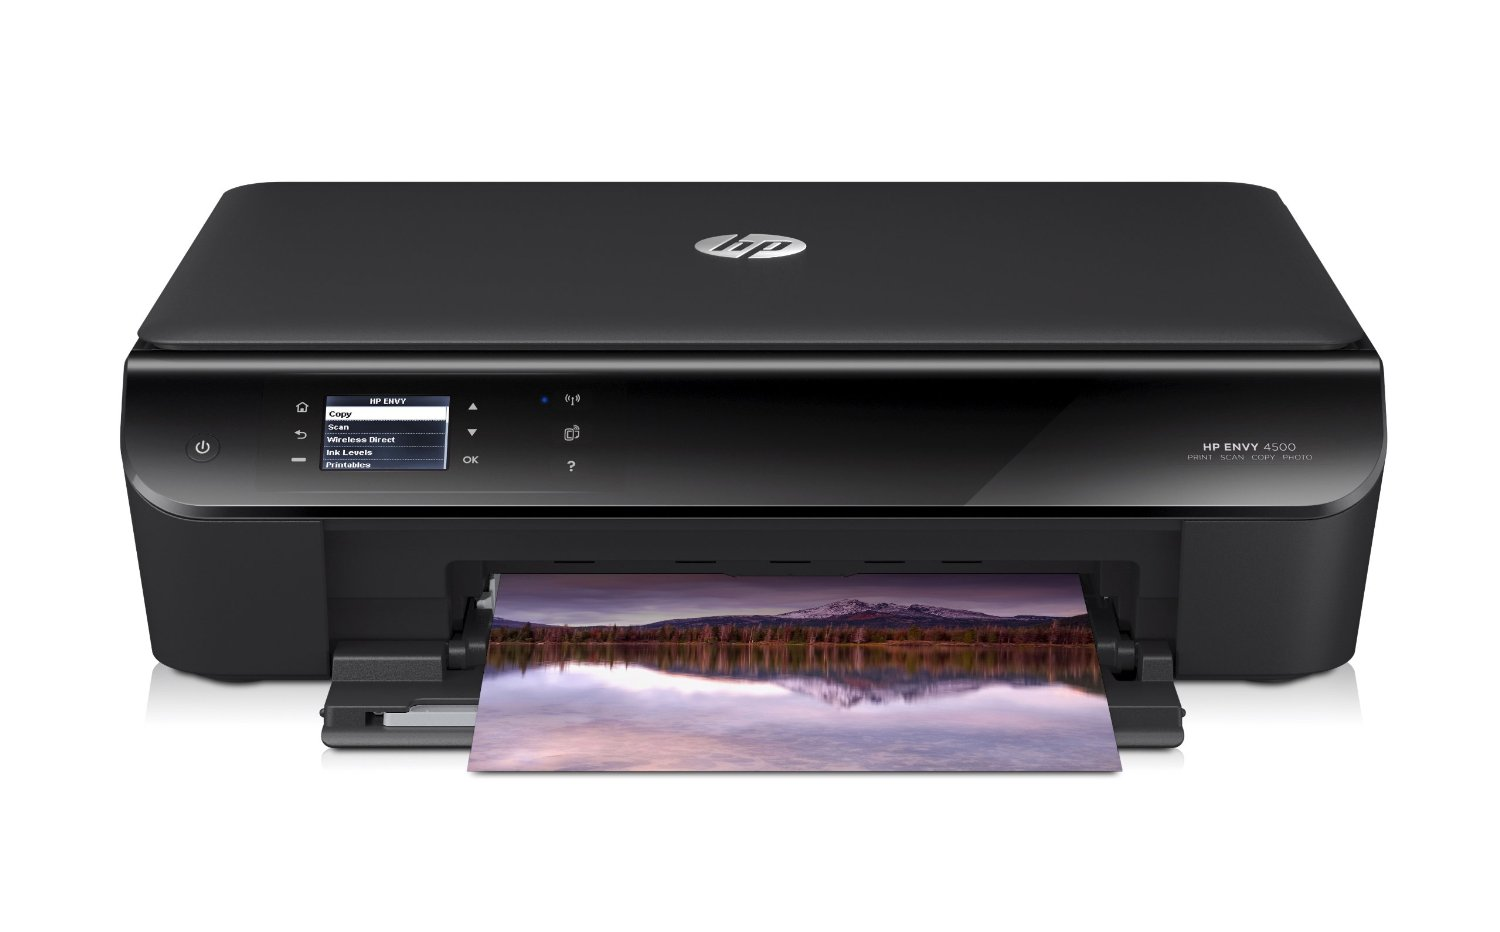 HP ENVY 4500 – Impresora multifunción de tinta a color